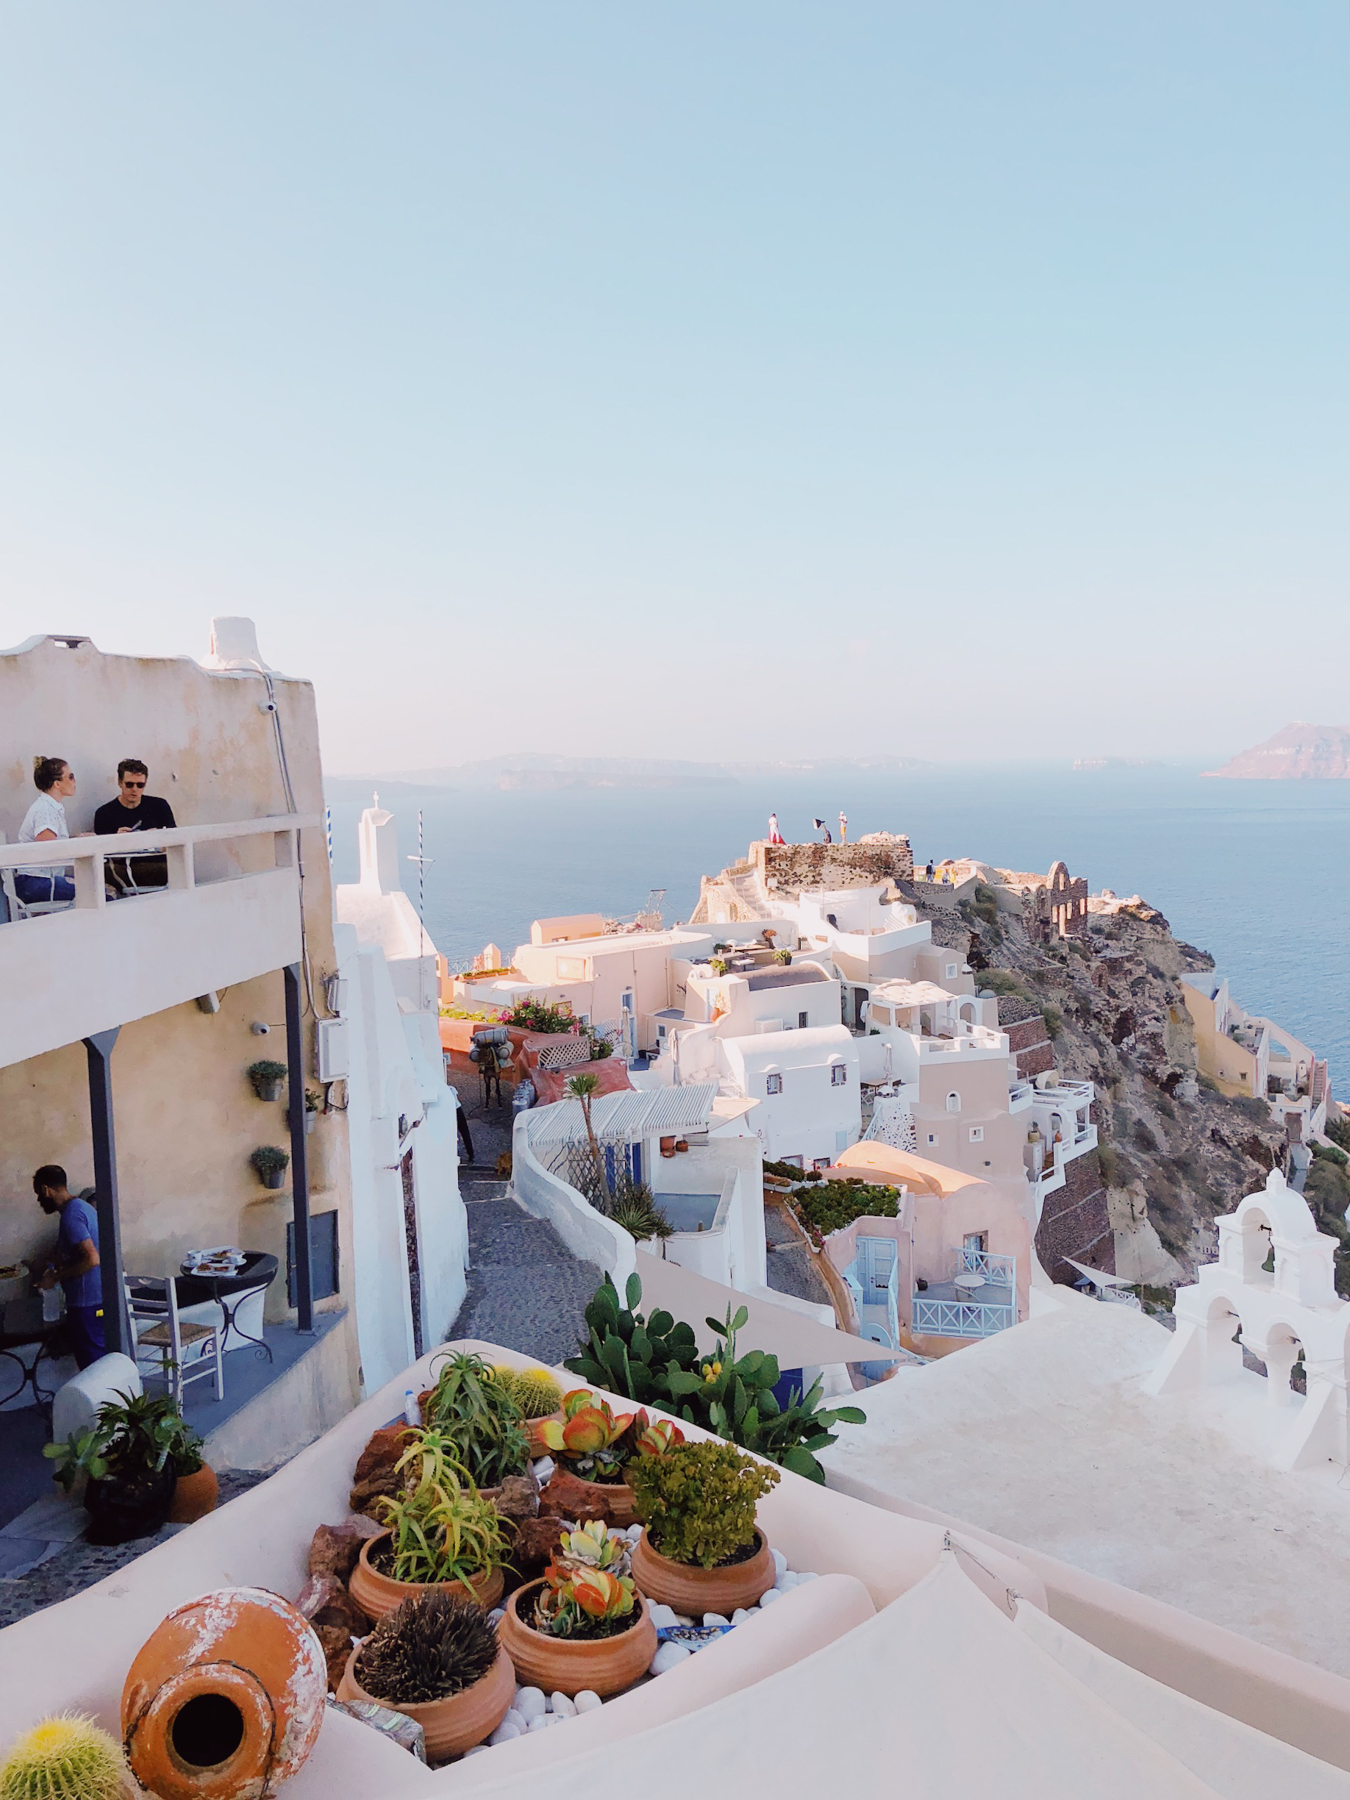 Walking around Oia, Vitrin Cafe is on the left